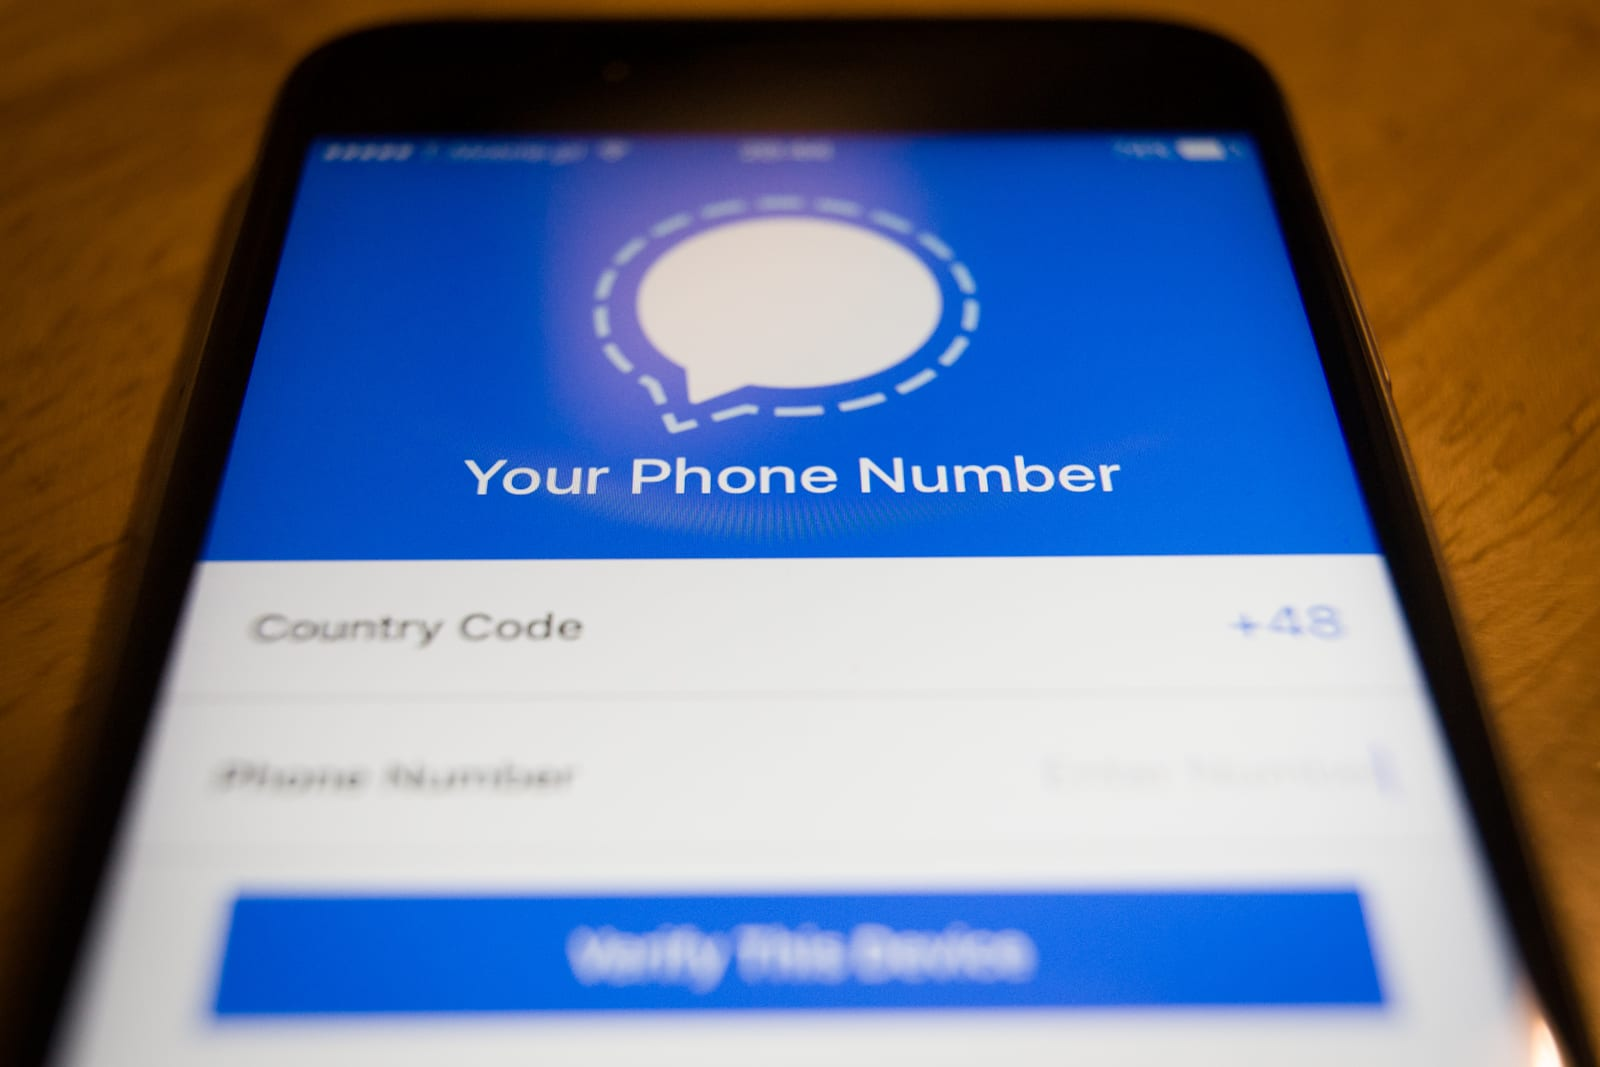 Signal tests changes to how users verify secure contacts